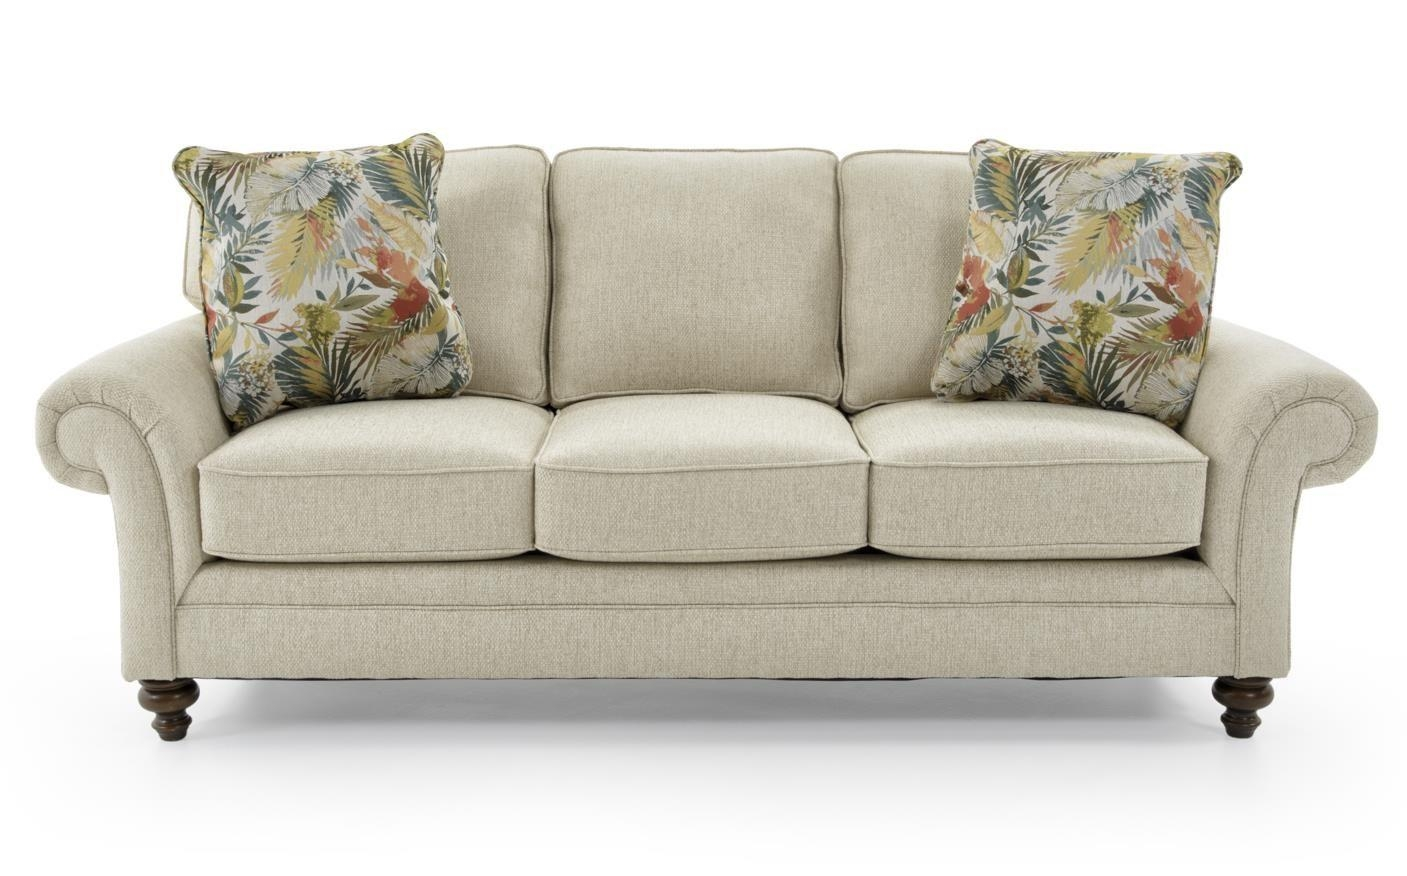 Broyhill Furniture Larissa Upholstered Stationary Sofa With Rolled Throughout Broyhill Sofas (Image 11 of 20)